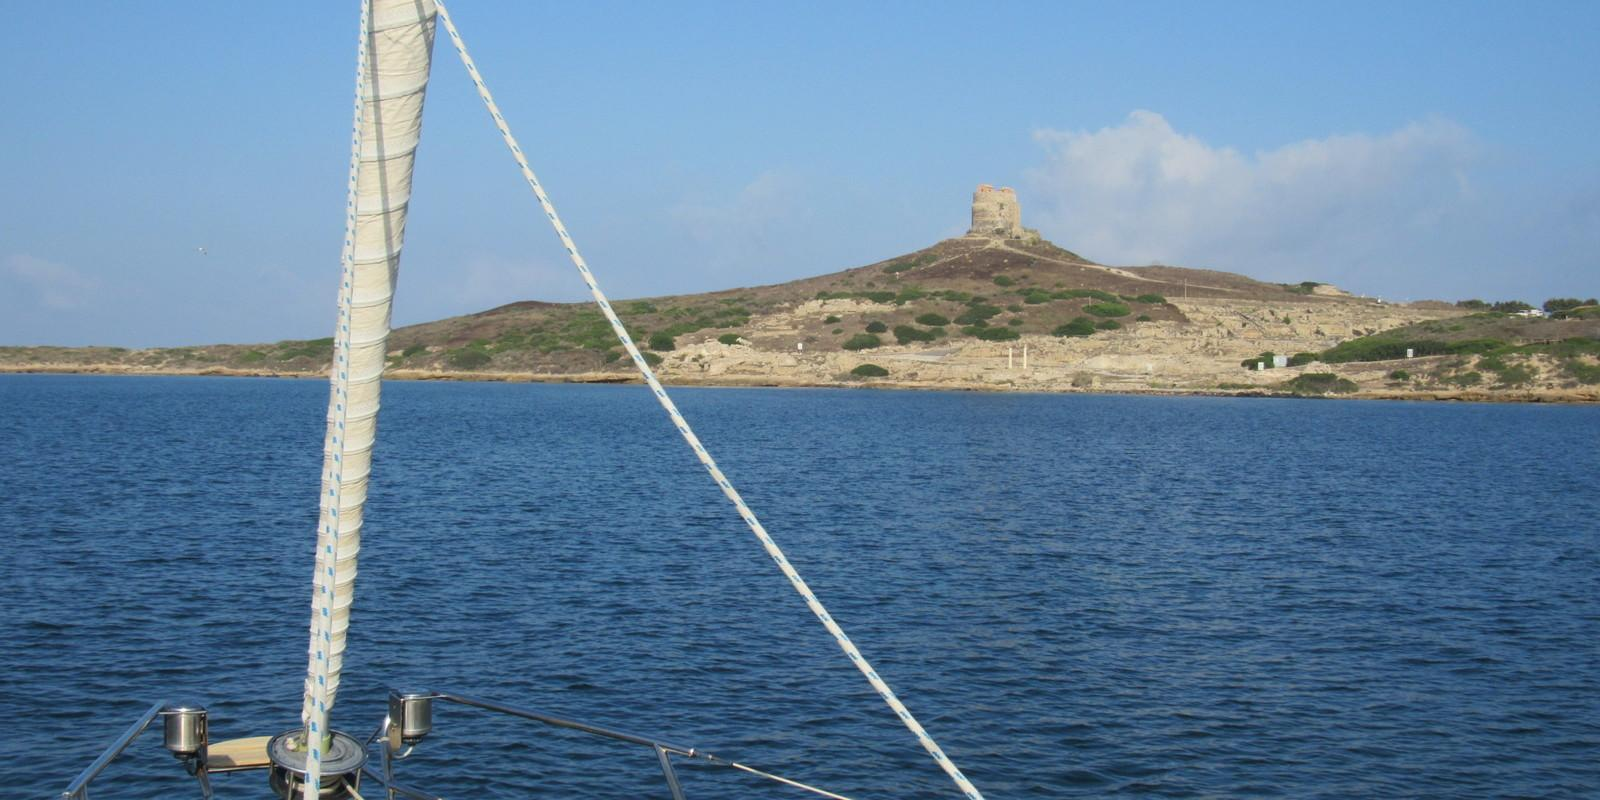 The West Coast of Sardinia sailing with skipper and hostess on board